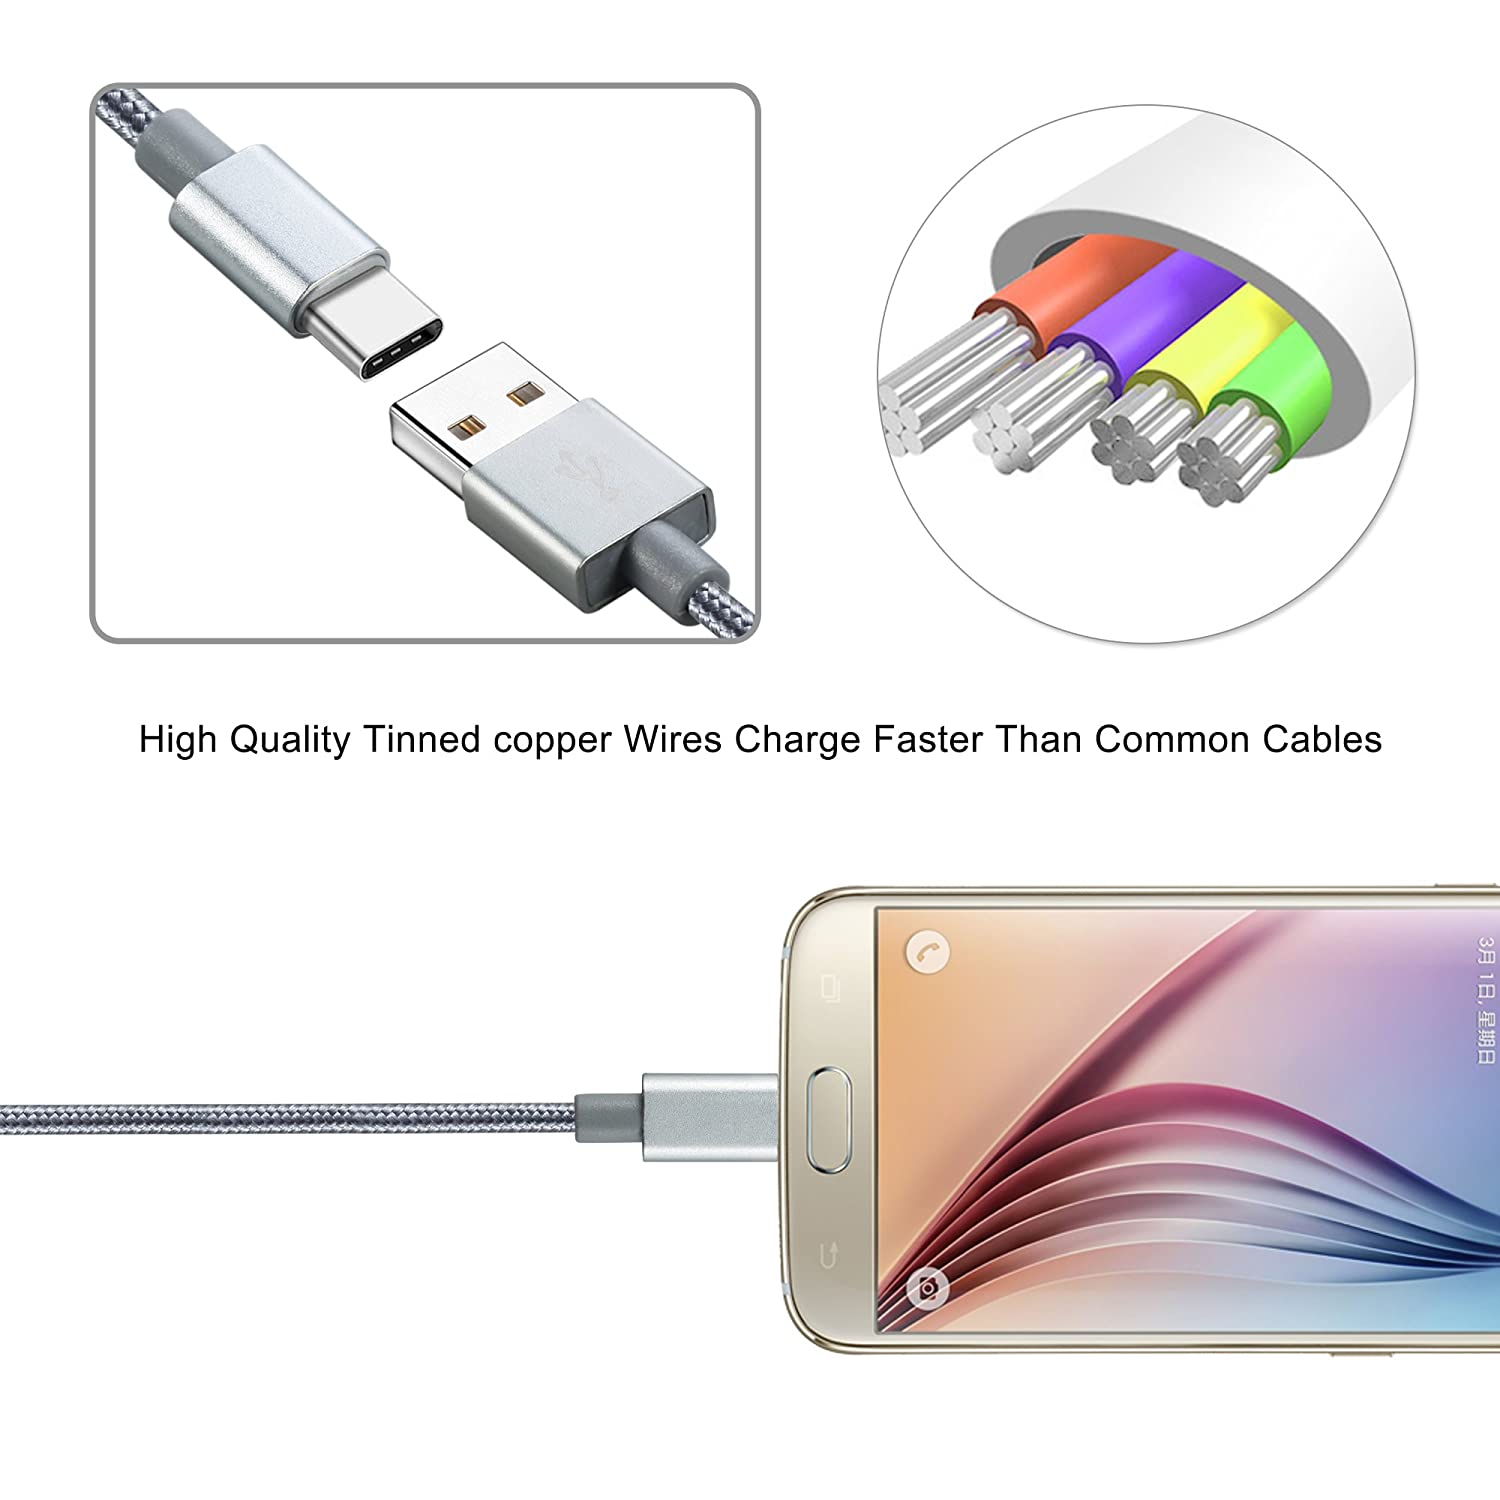 Usb Type C Cable 3pack 6ft 10ft Welmor Nylon Copper Wiring Retina Braided Fast Charger Cord For Samsung Galaxy S8s8 Plus